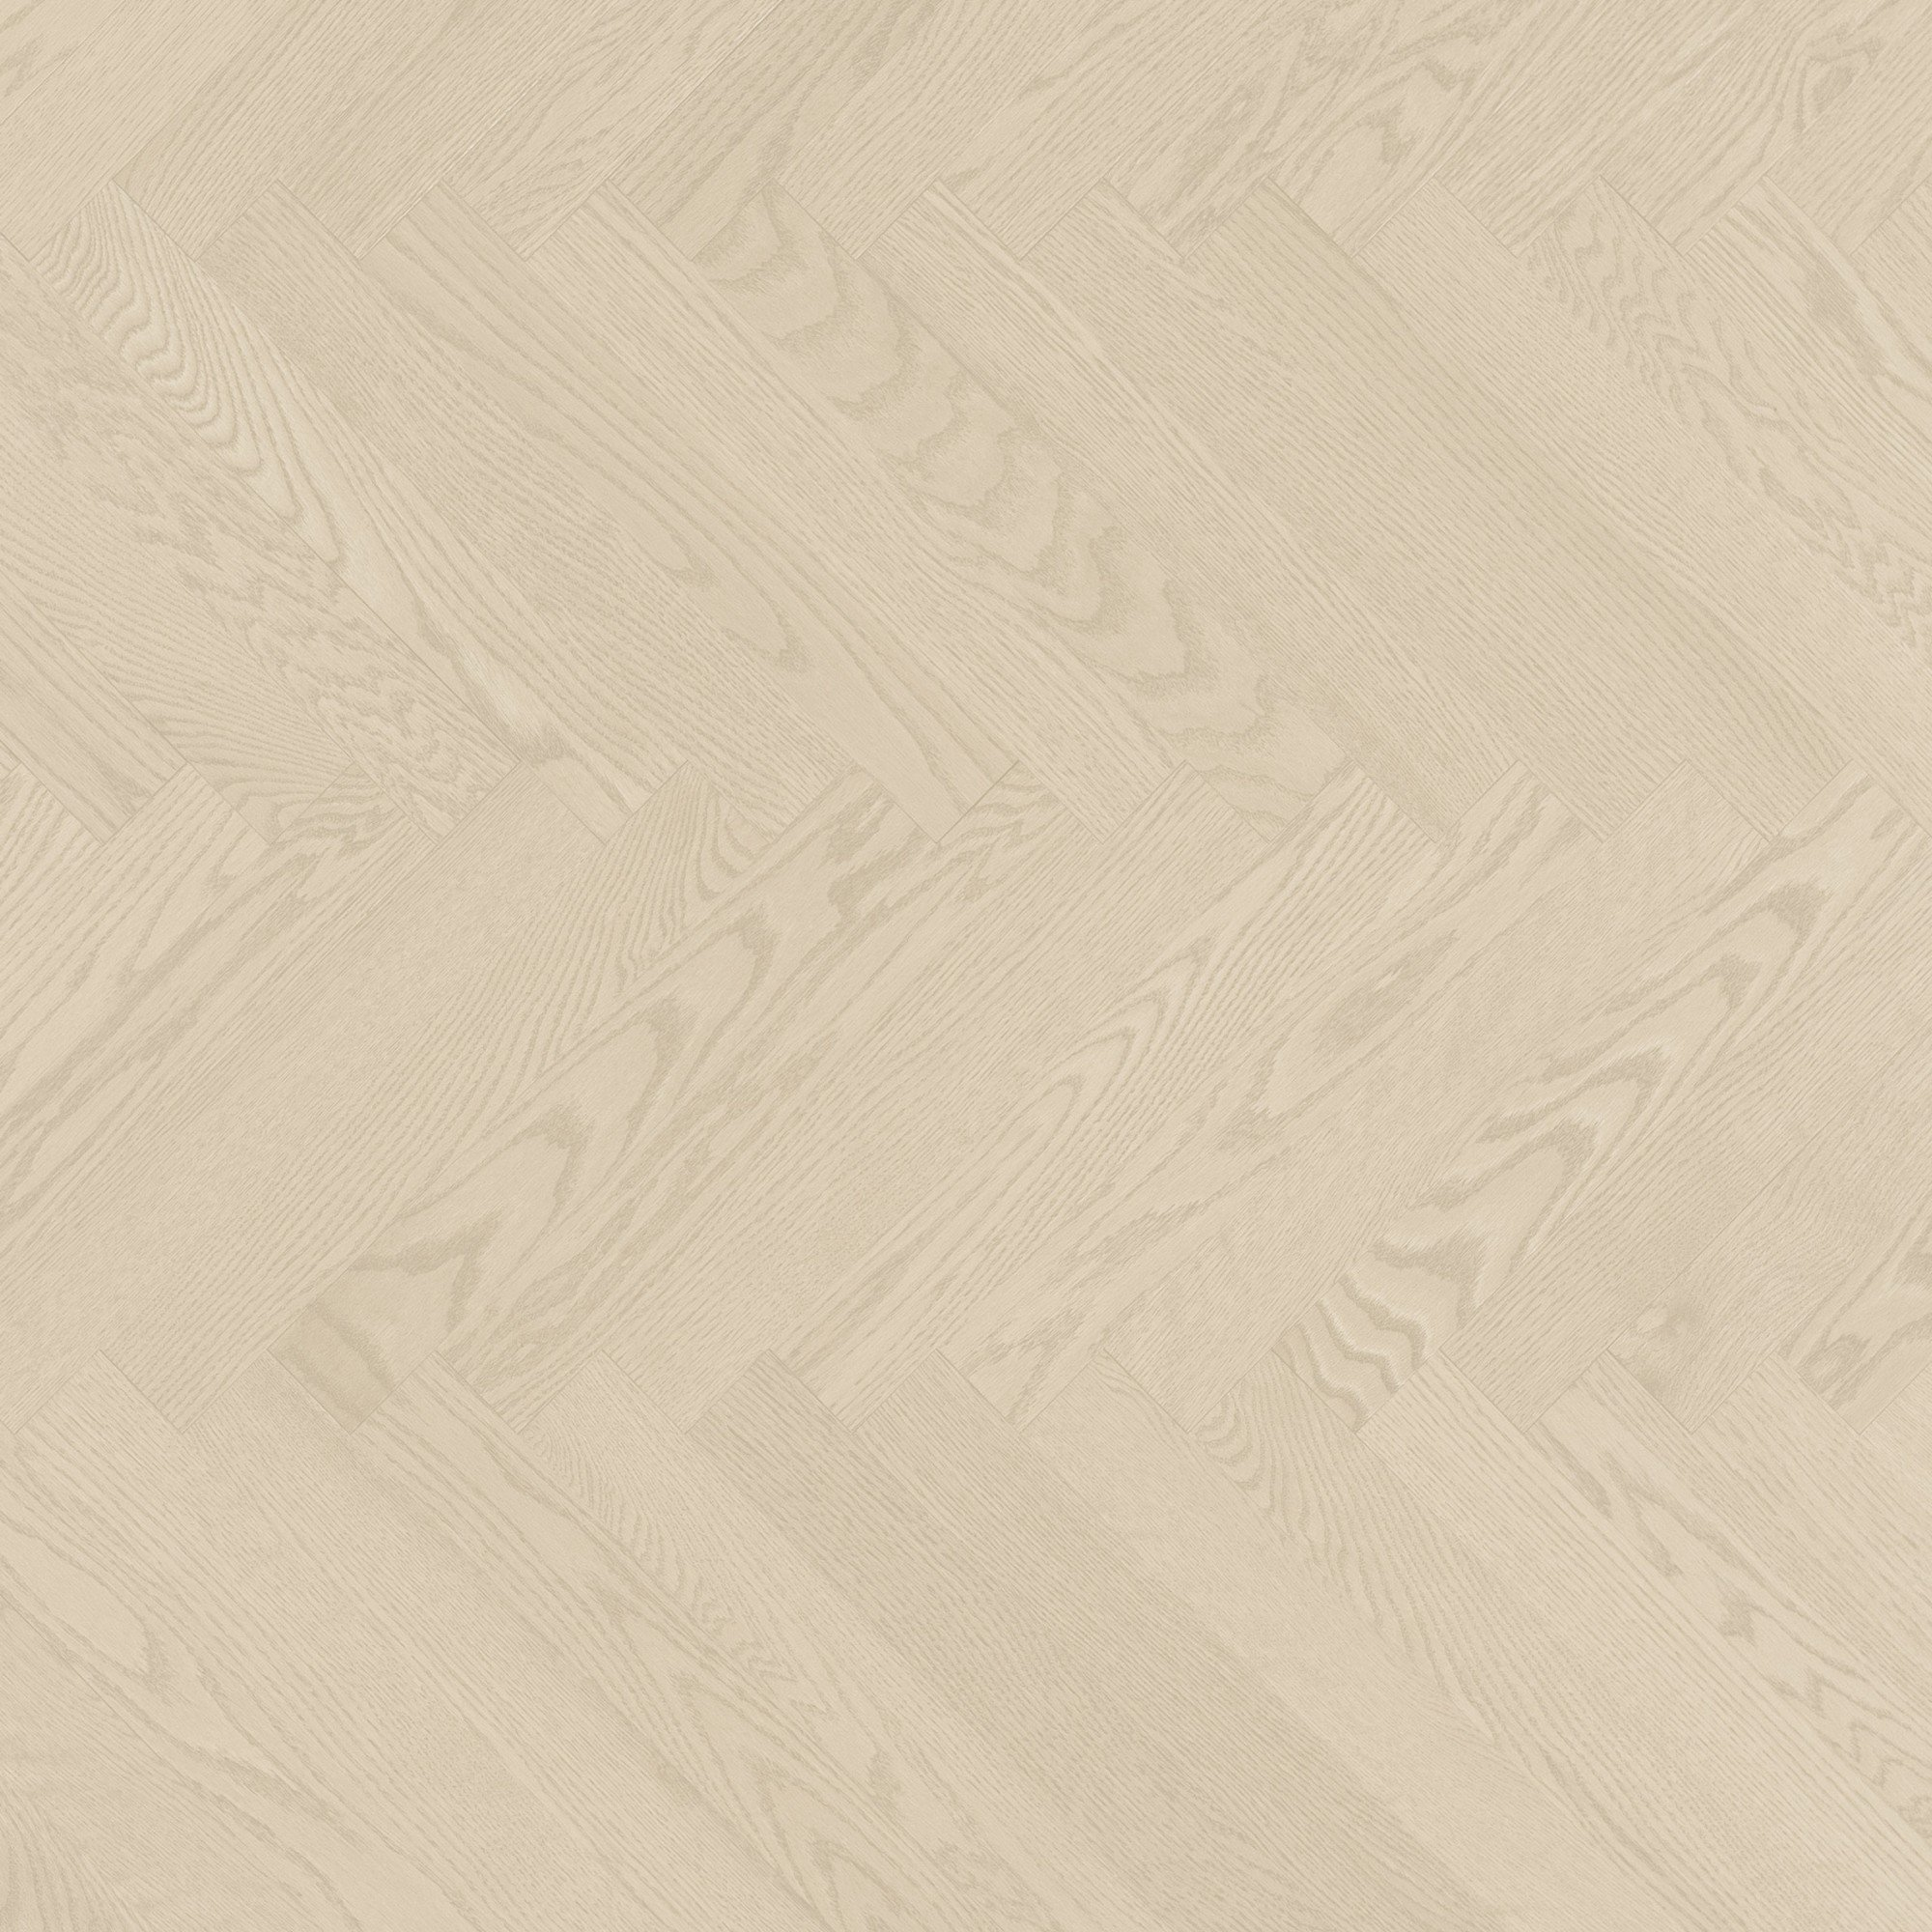 Red Oak Cape Cod - Floor image